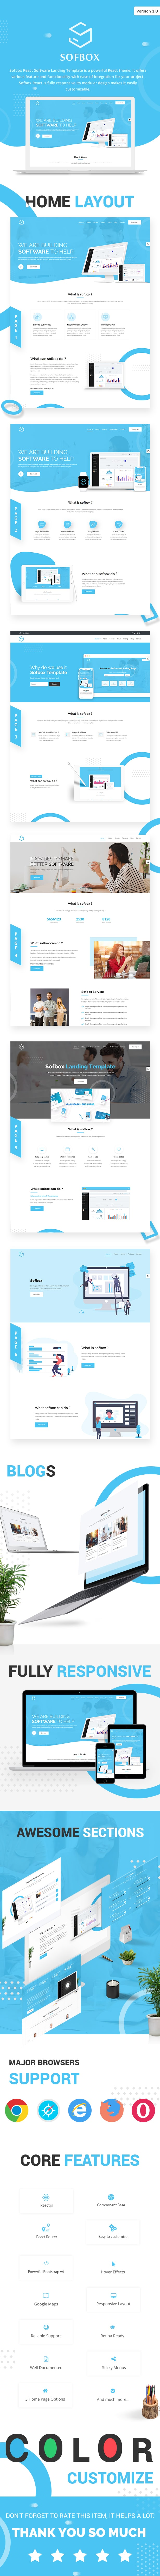 live-preview react js software landing page Sofbox livepreview